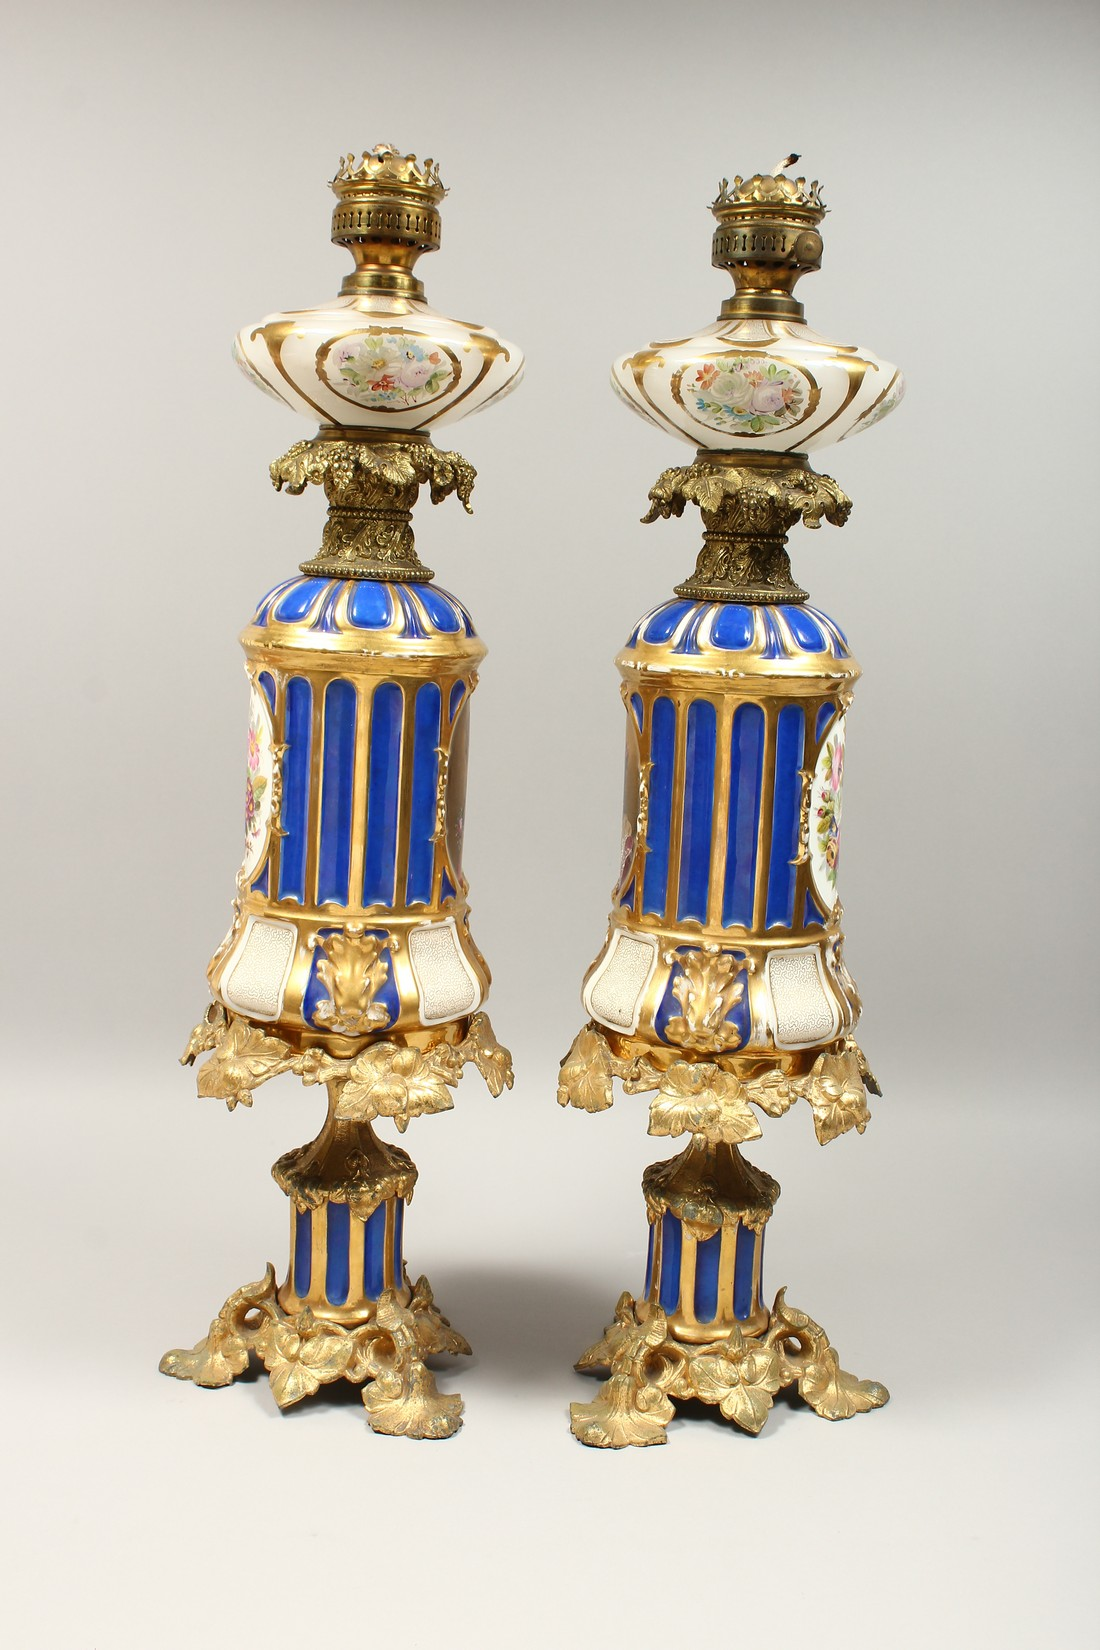 A SUPERB PAIR OF 19TH CENTURY FRENCH PORCELAIN AND GILT BRONZE LAMPS ON STANDS, painted with - Image 8 of 24